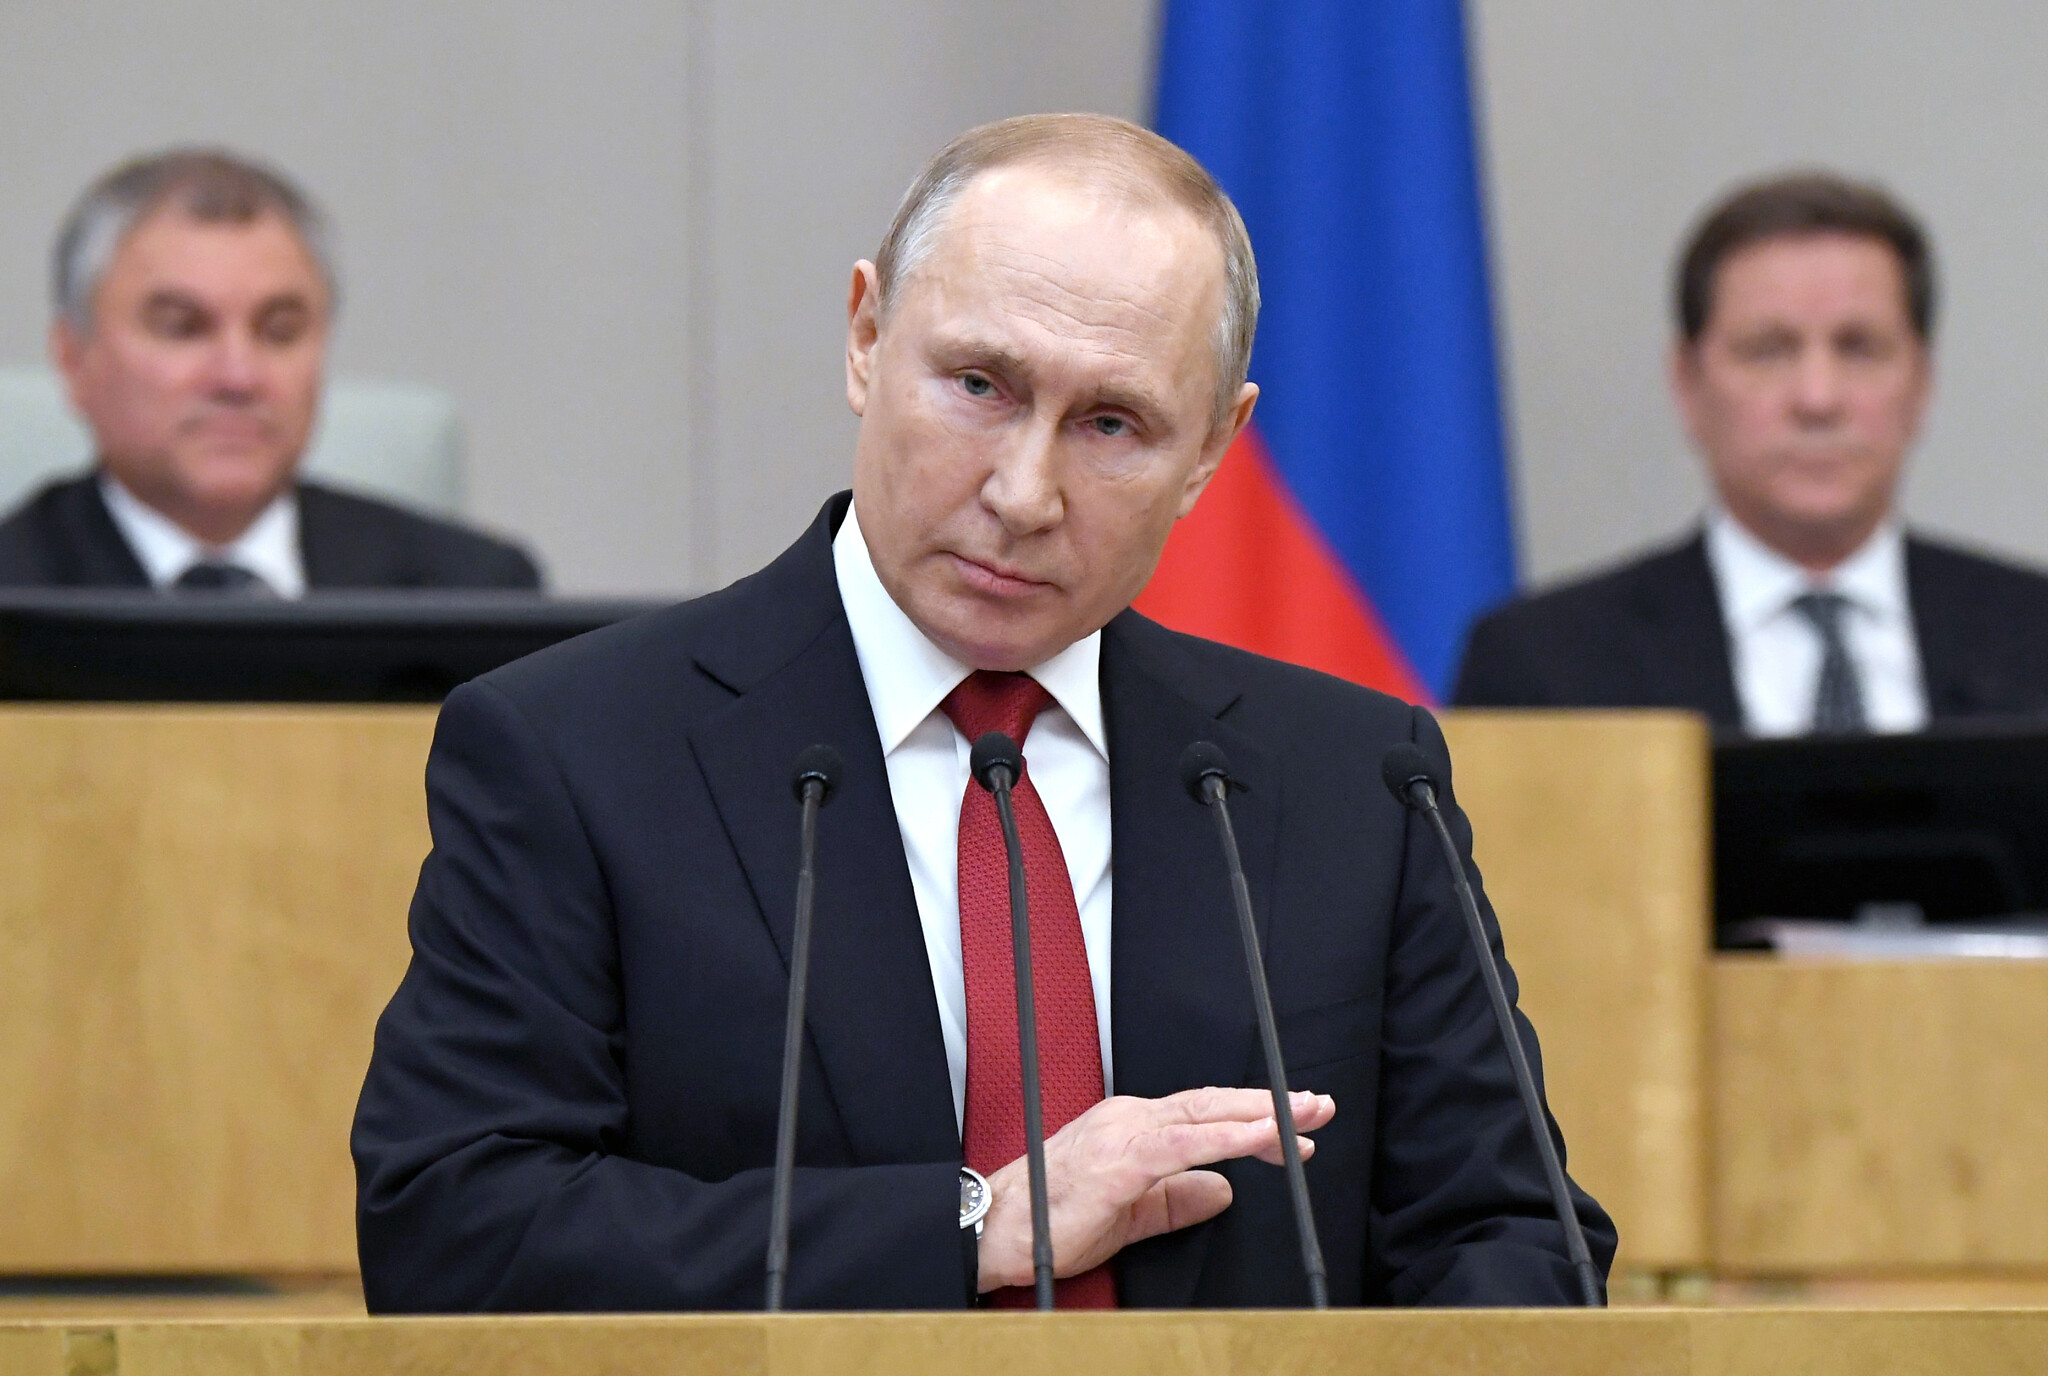 Explained: Why Vladimir Putin could be Russia's president till 2036